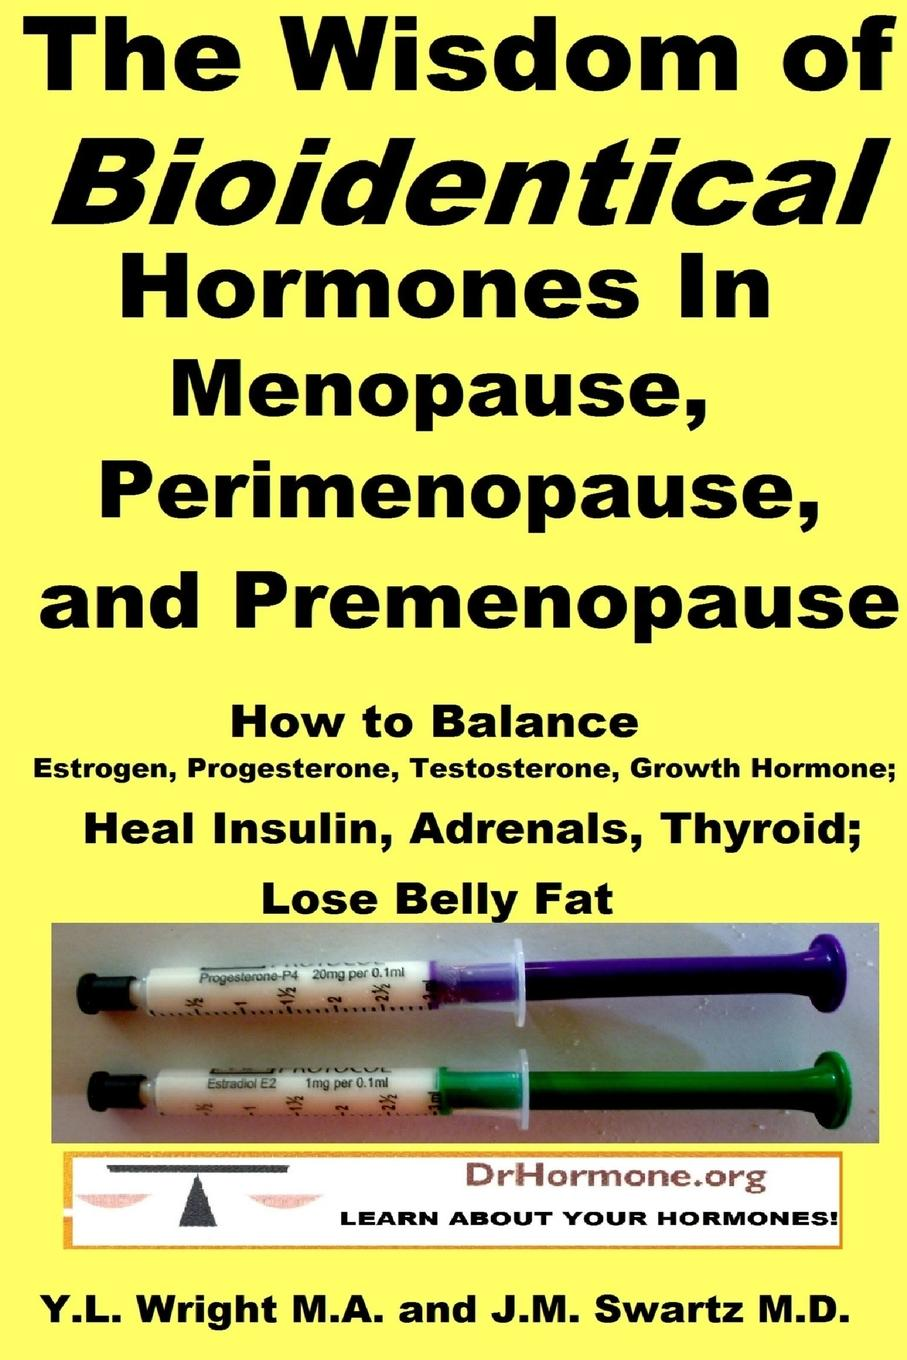 The Wisdom of Bioidentical Hormones In Menopause, Perimenopause, and Premenopause. How to Balance Estrogen, Progesterone, Testosterone, Growth Hormone; Heal Insulin, Adrenals, Thyroid; Lose Belly Fat THE WISDOM OF BIOIDENTICAL HORMONES lies in knowing when how...